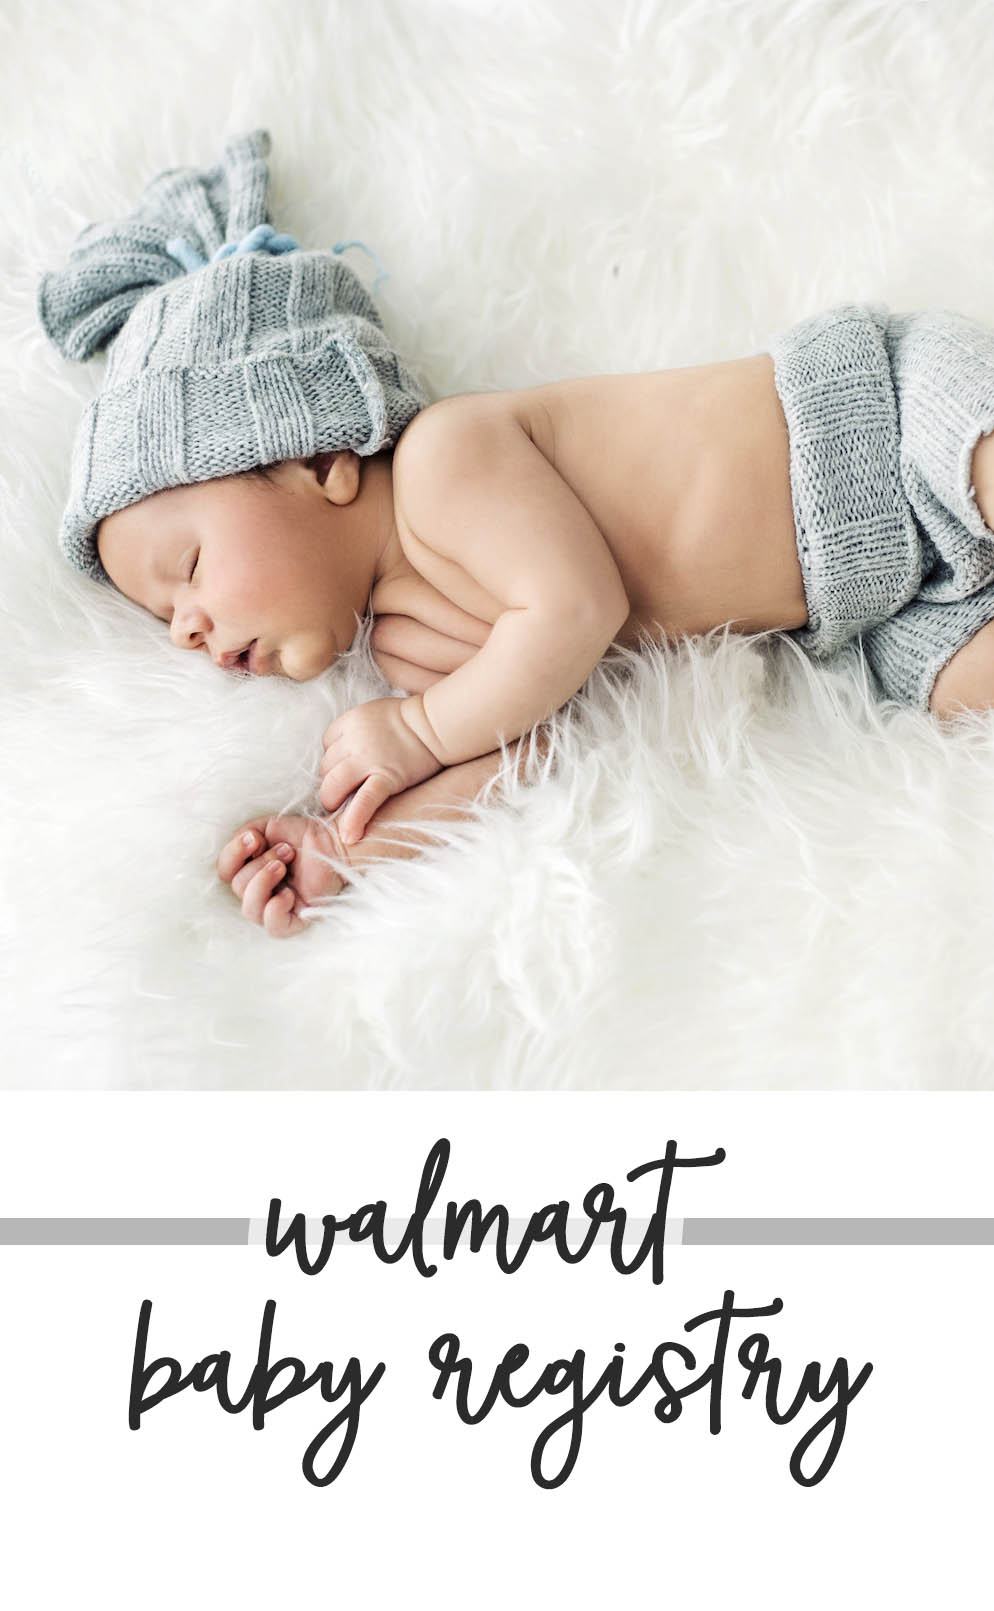 Walmart Baby Registry - New mom list of must-haves for baby